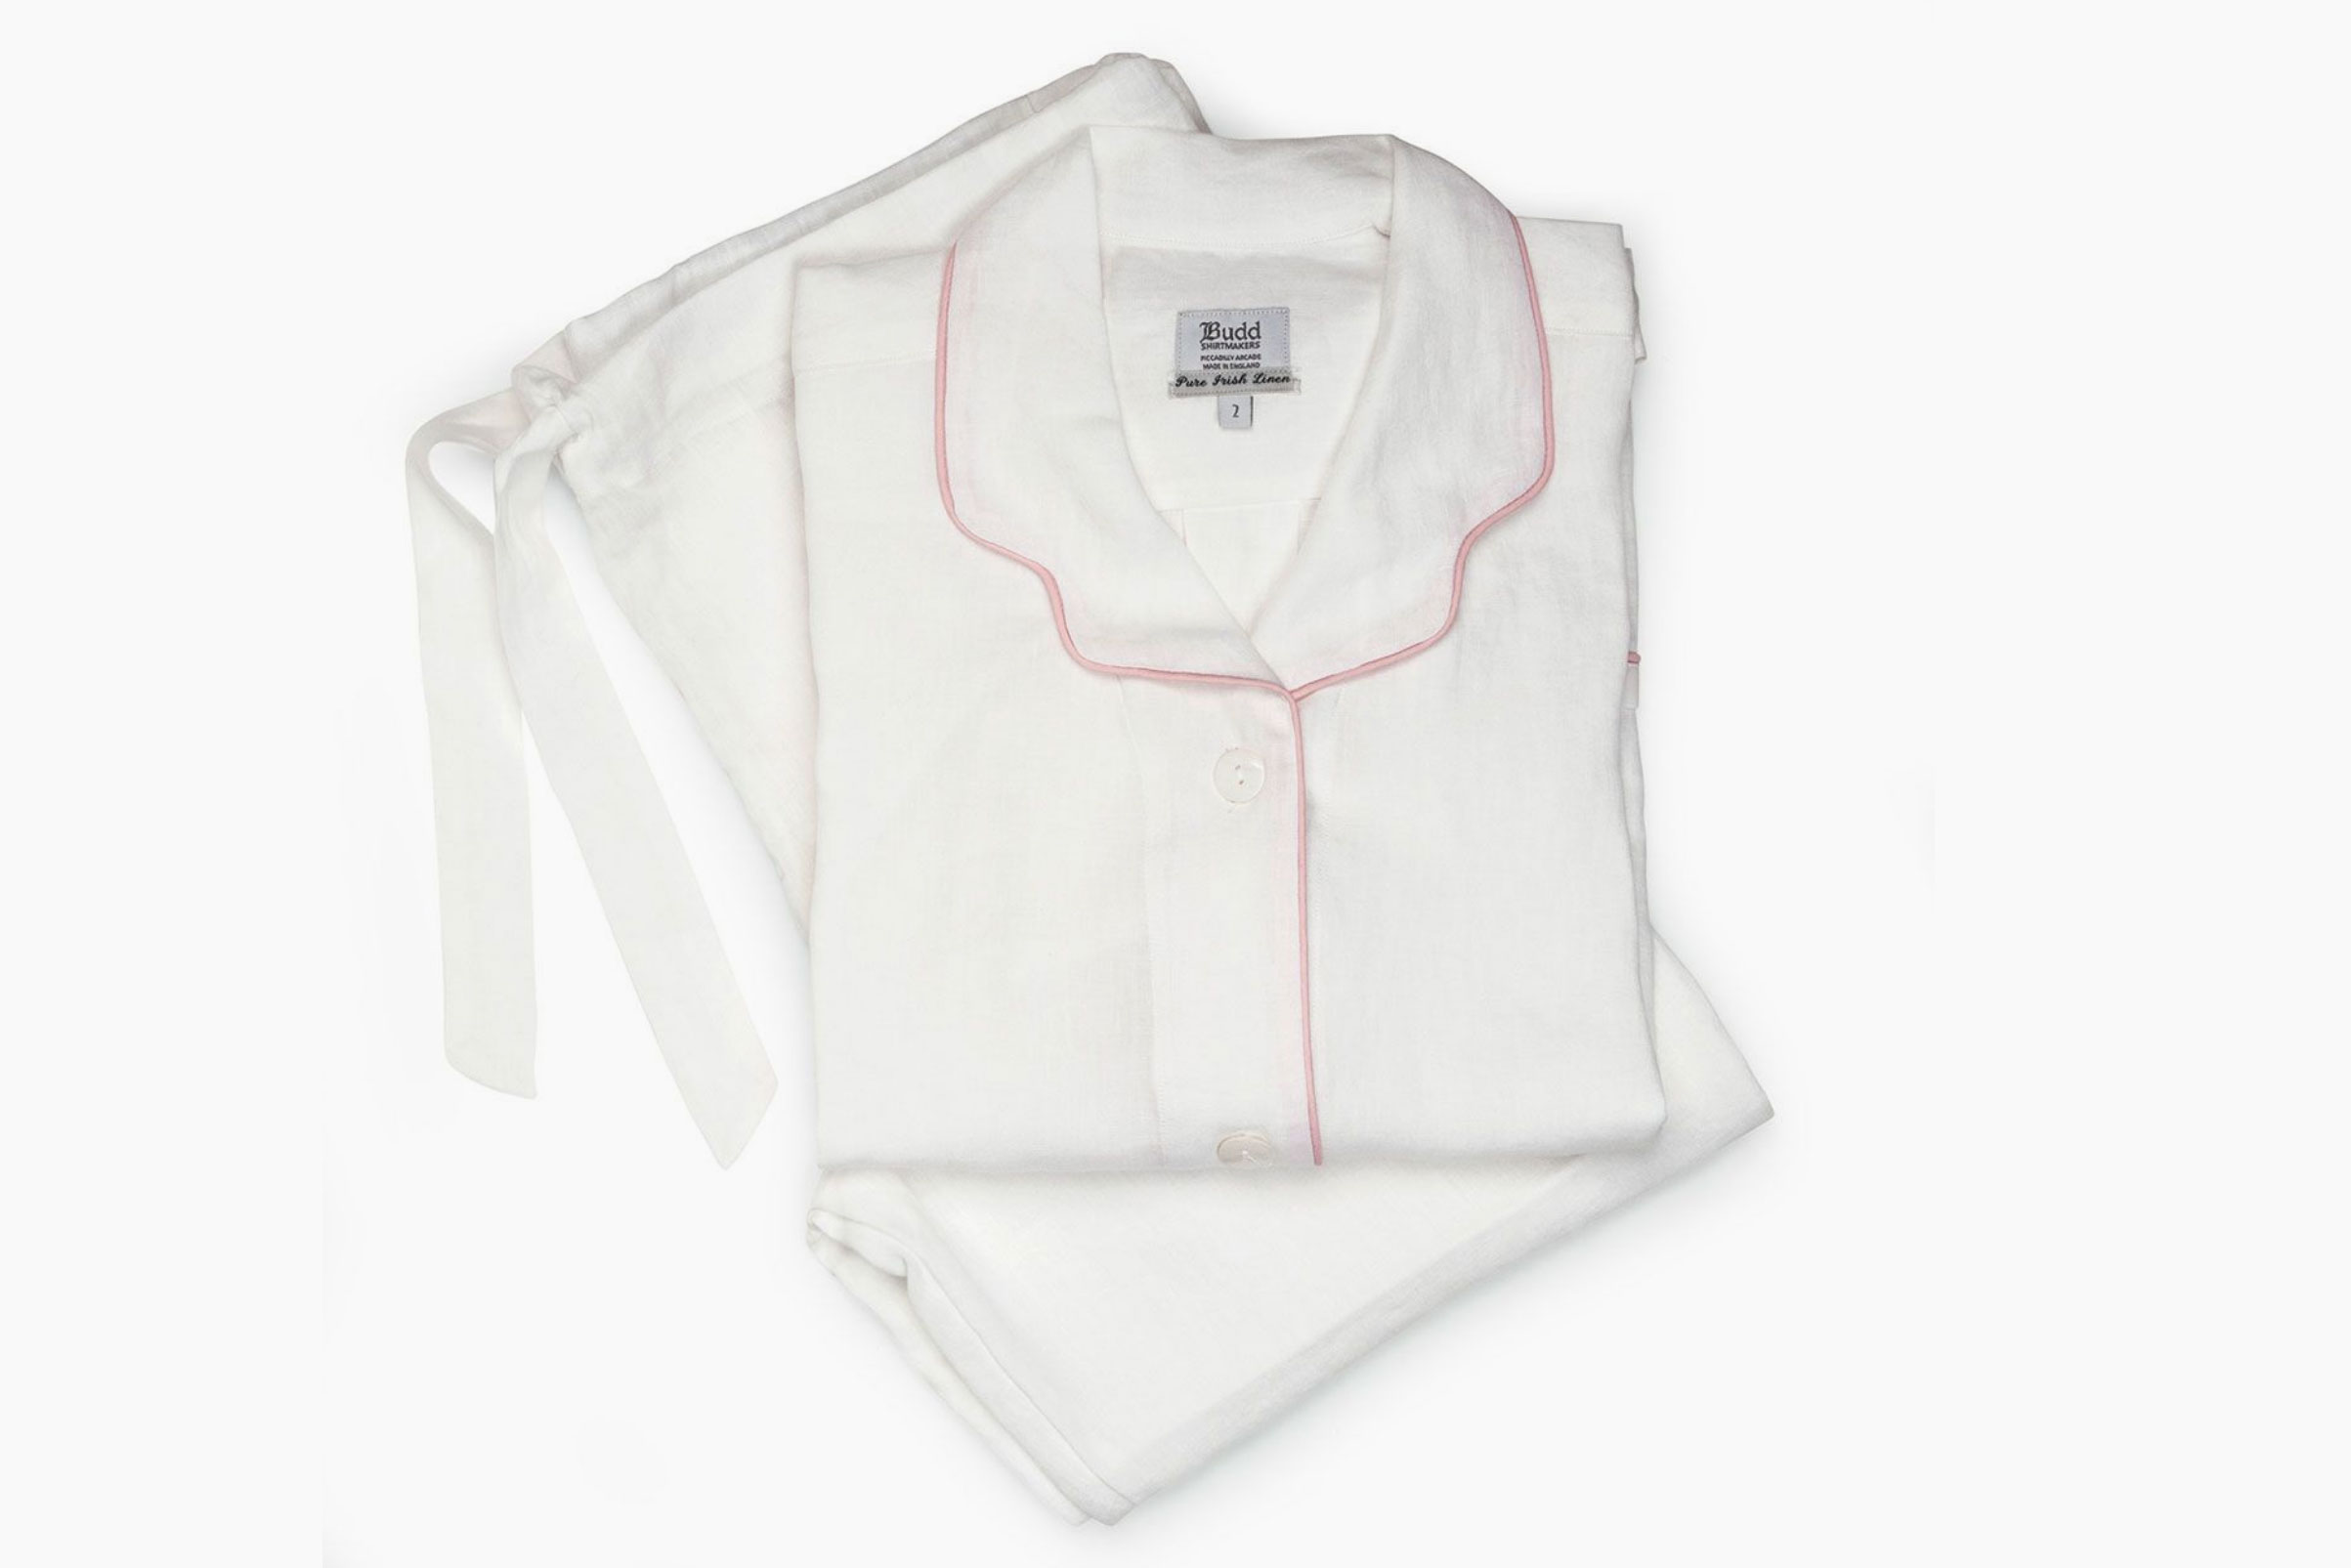 Budd London Plain Linen Pajamas, White and Pink